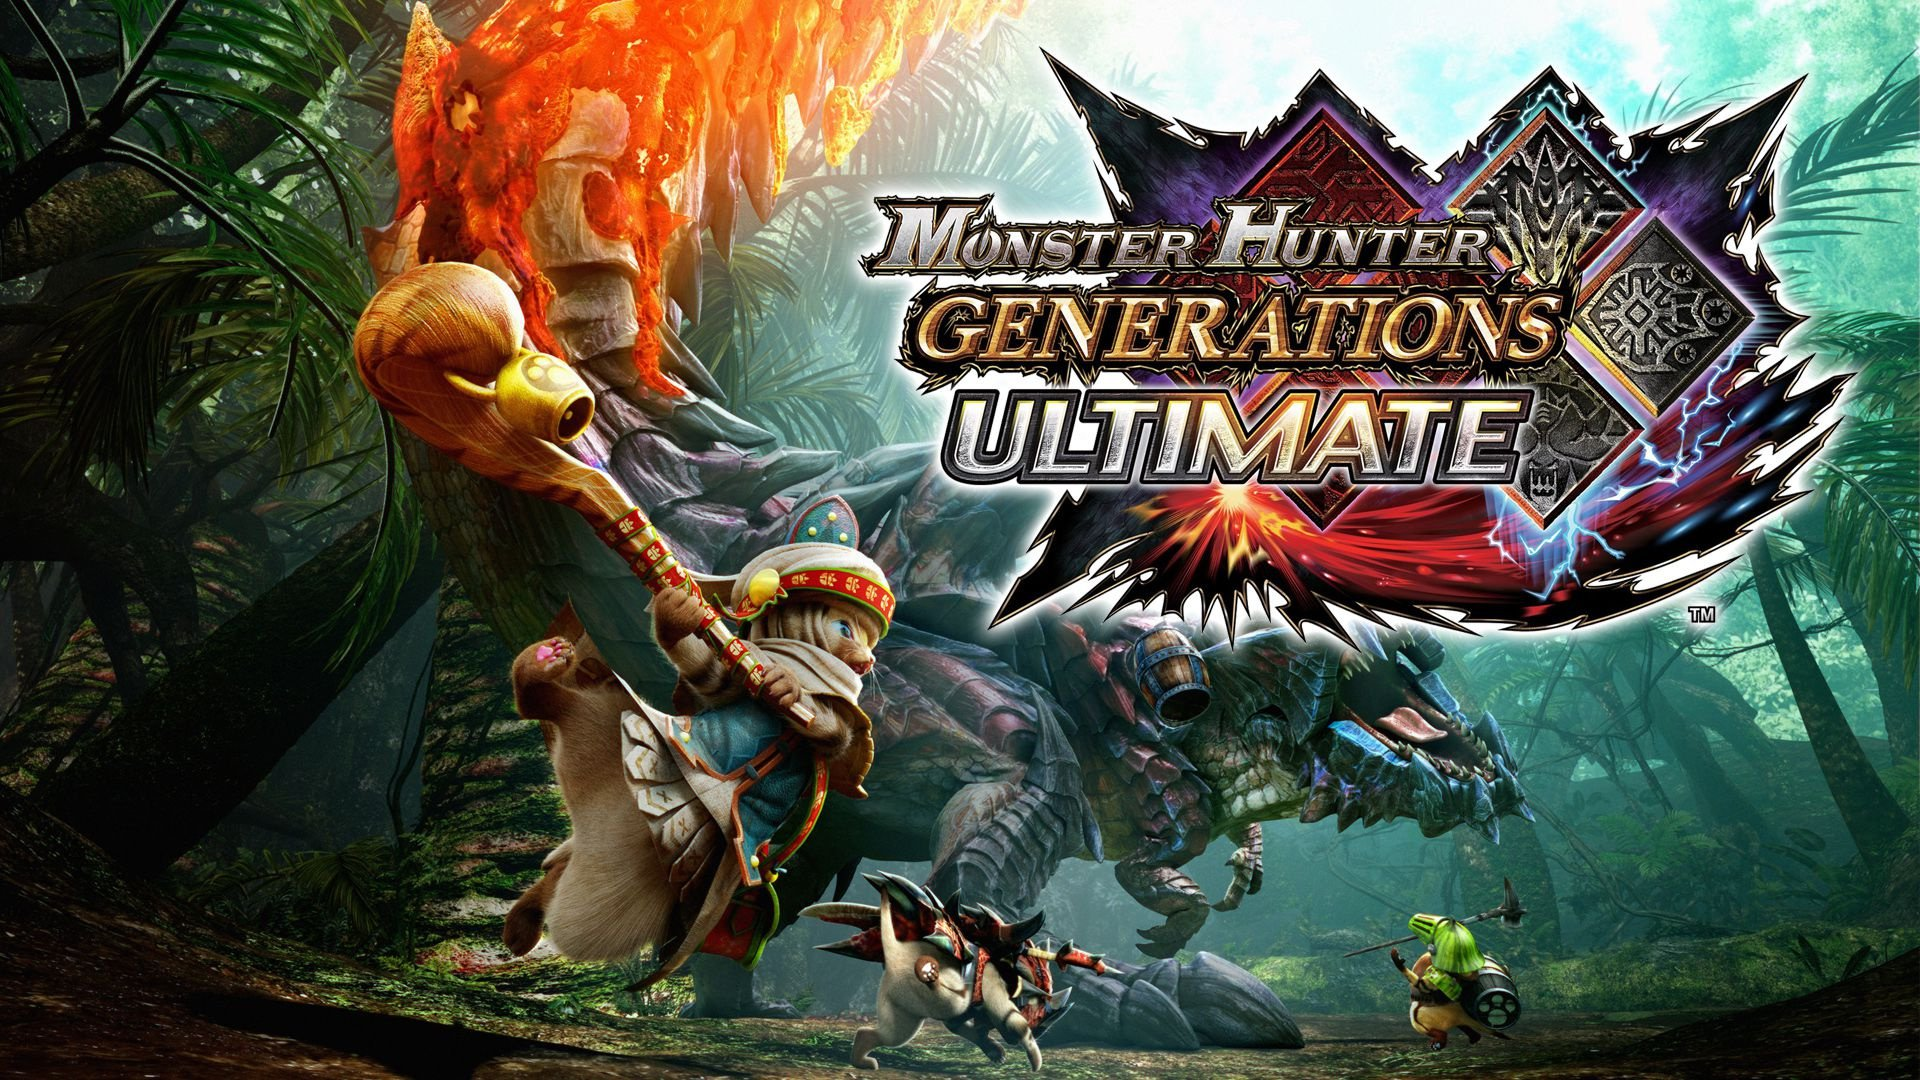 Monster Hunter Generations Ultimate Large Monster List All Large Monsters Locations Habitats And Species Guide Nintendo Life